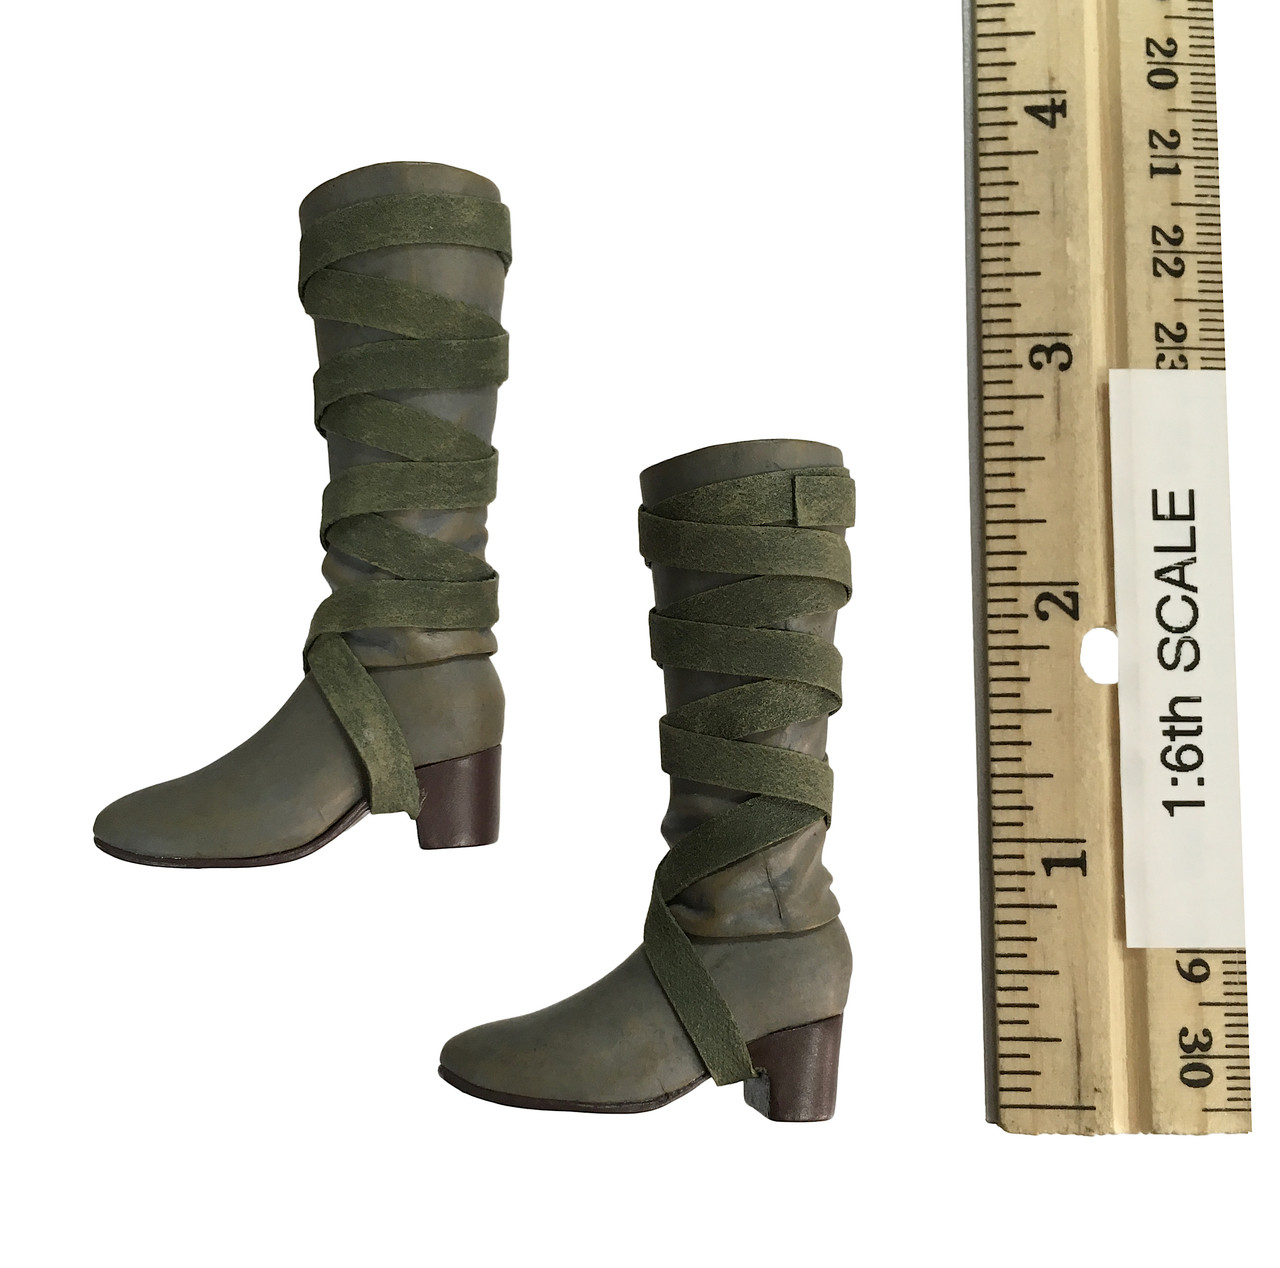 Game of Thrones: Daenerys Targaryen - Boots & Leggings (No Ball Joints)  (See Note)